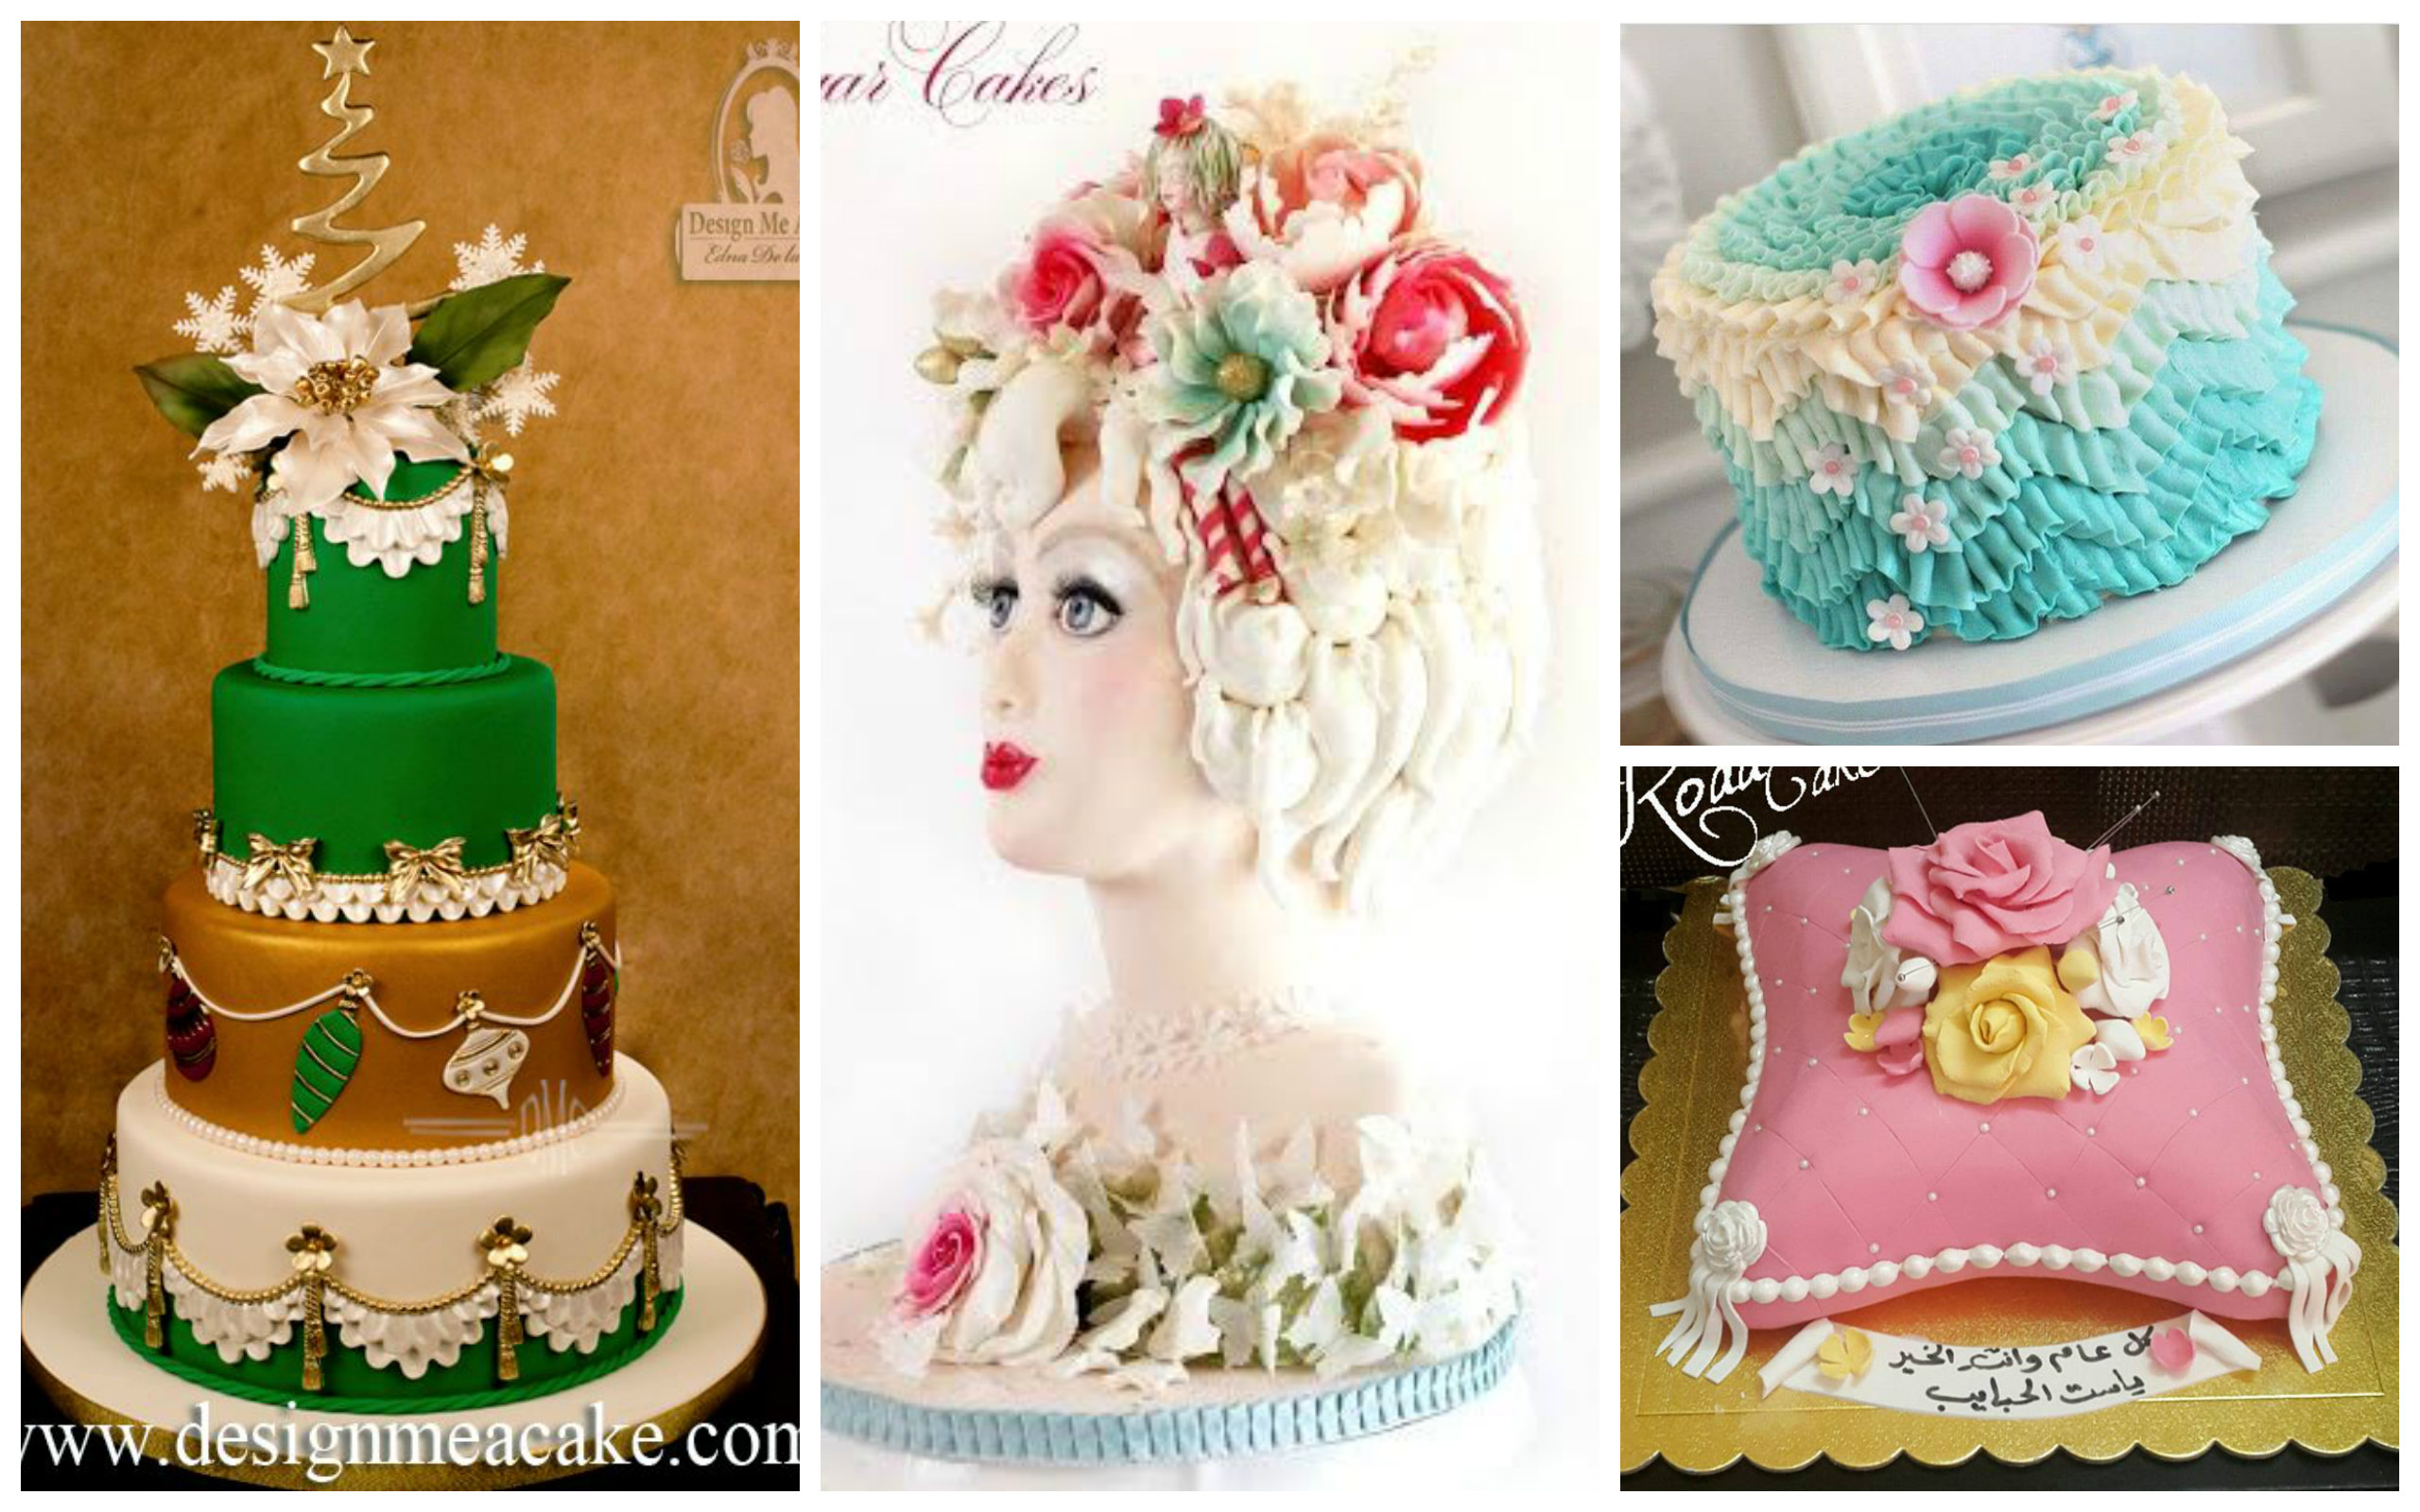 Best Cake Design In The World Best Cake Design In Th...